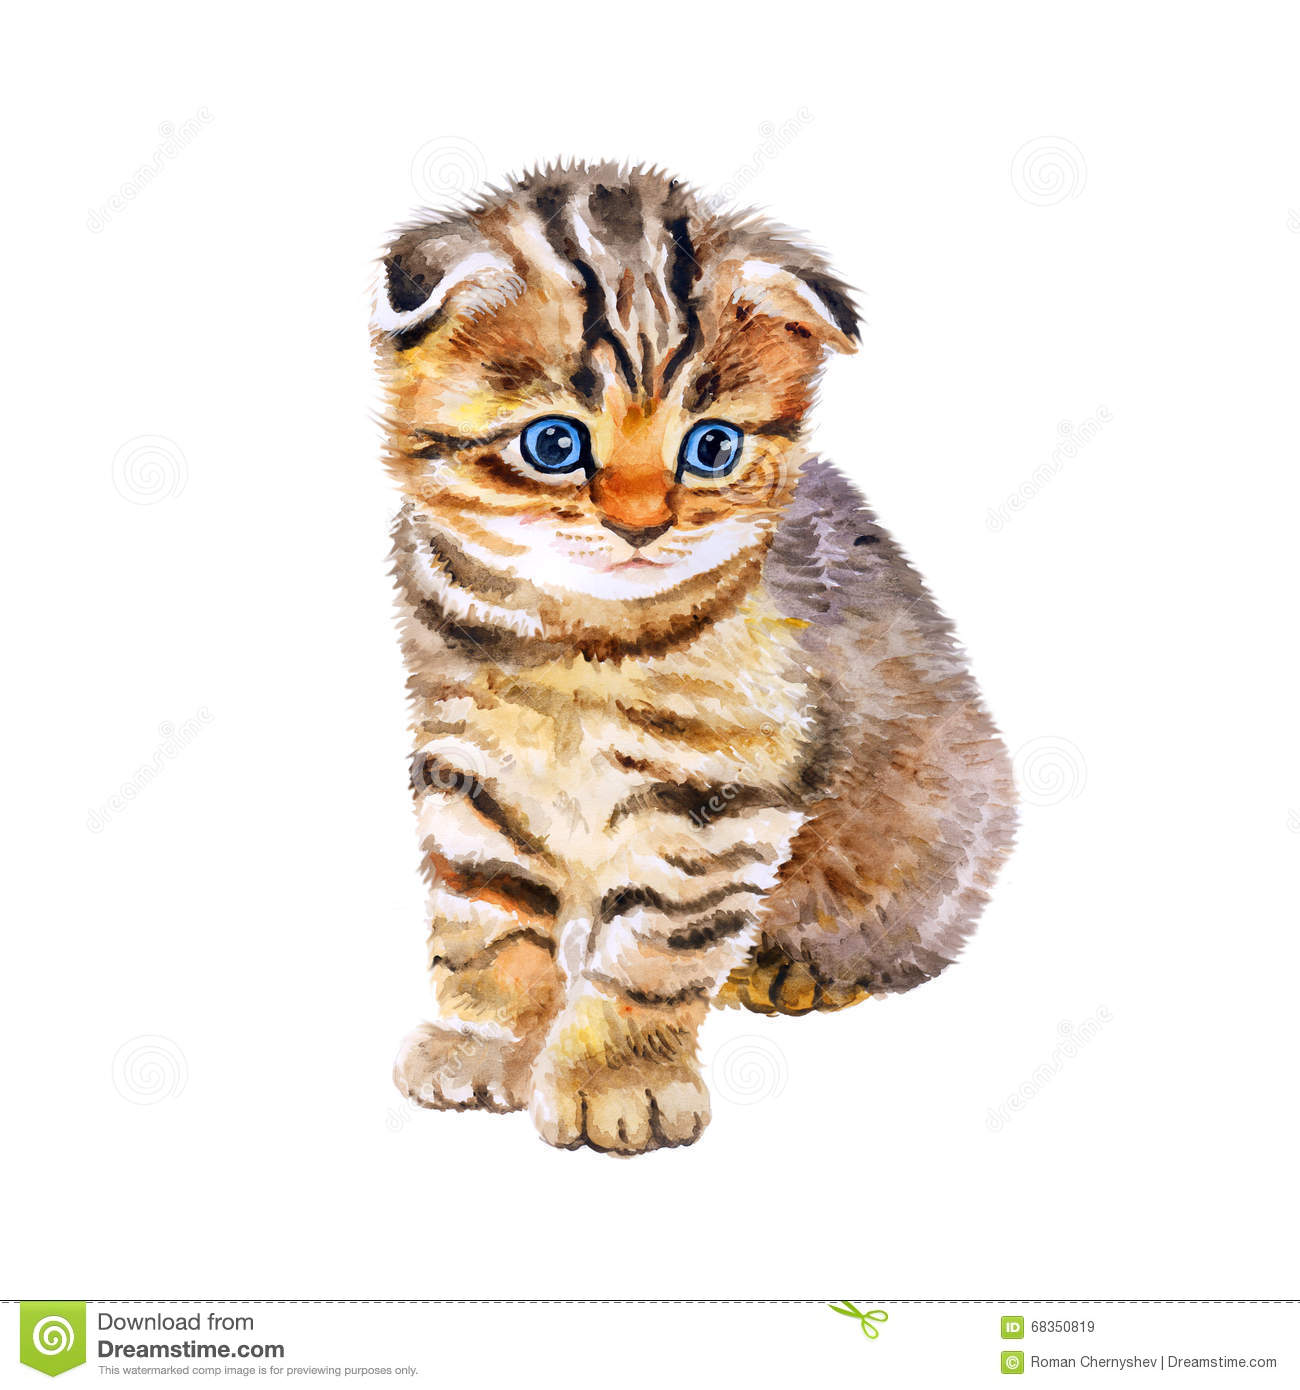 Cute White Kittens With Blue Eyes Wallpaper Watercolor Portrait Of British Scottish Fold Kitten With